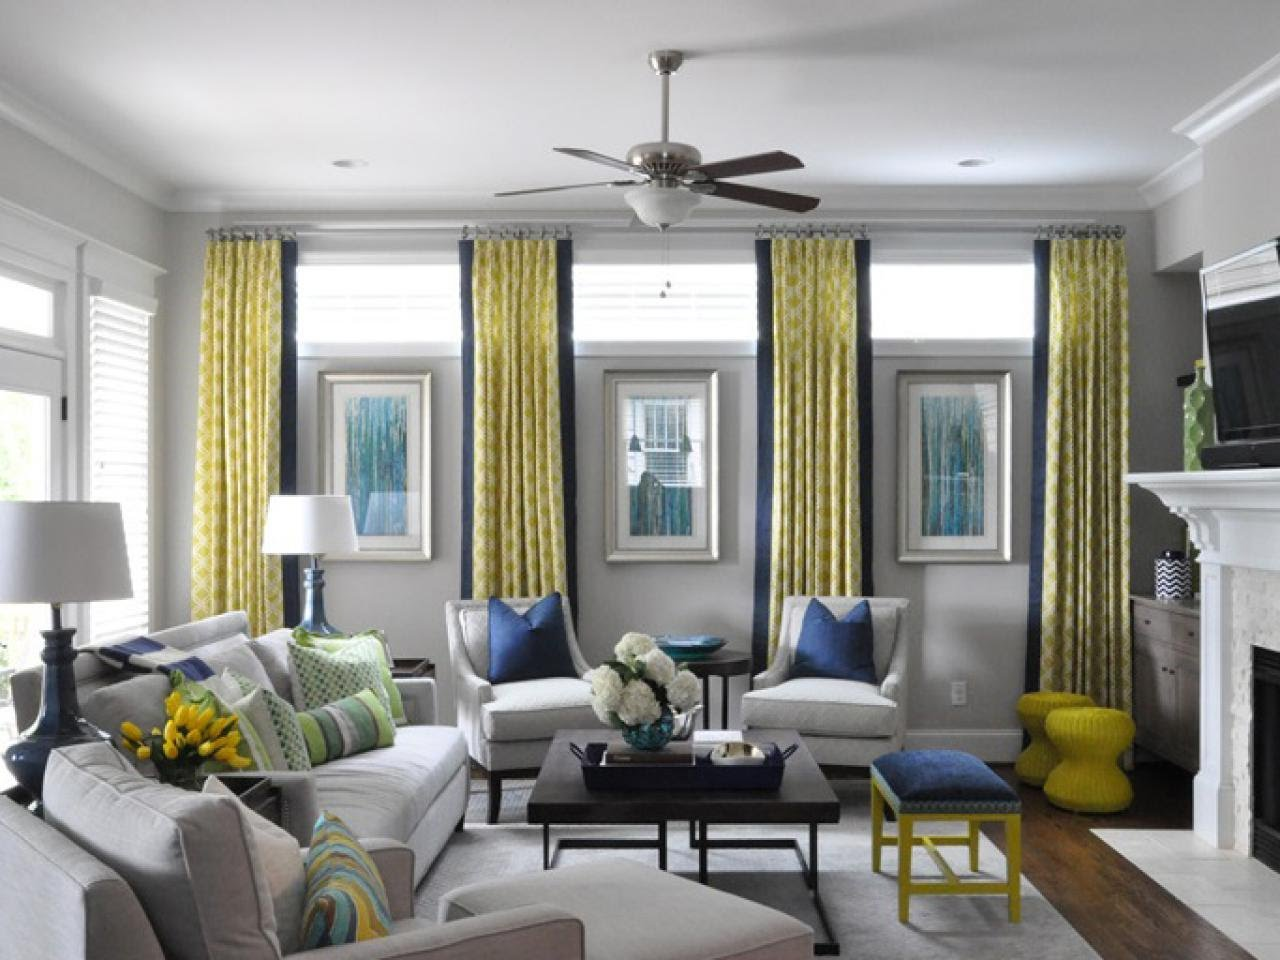 awesome window treatment ideas for living room - youtube GKQZZTI